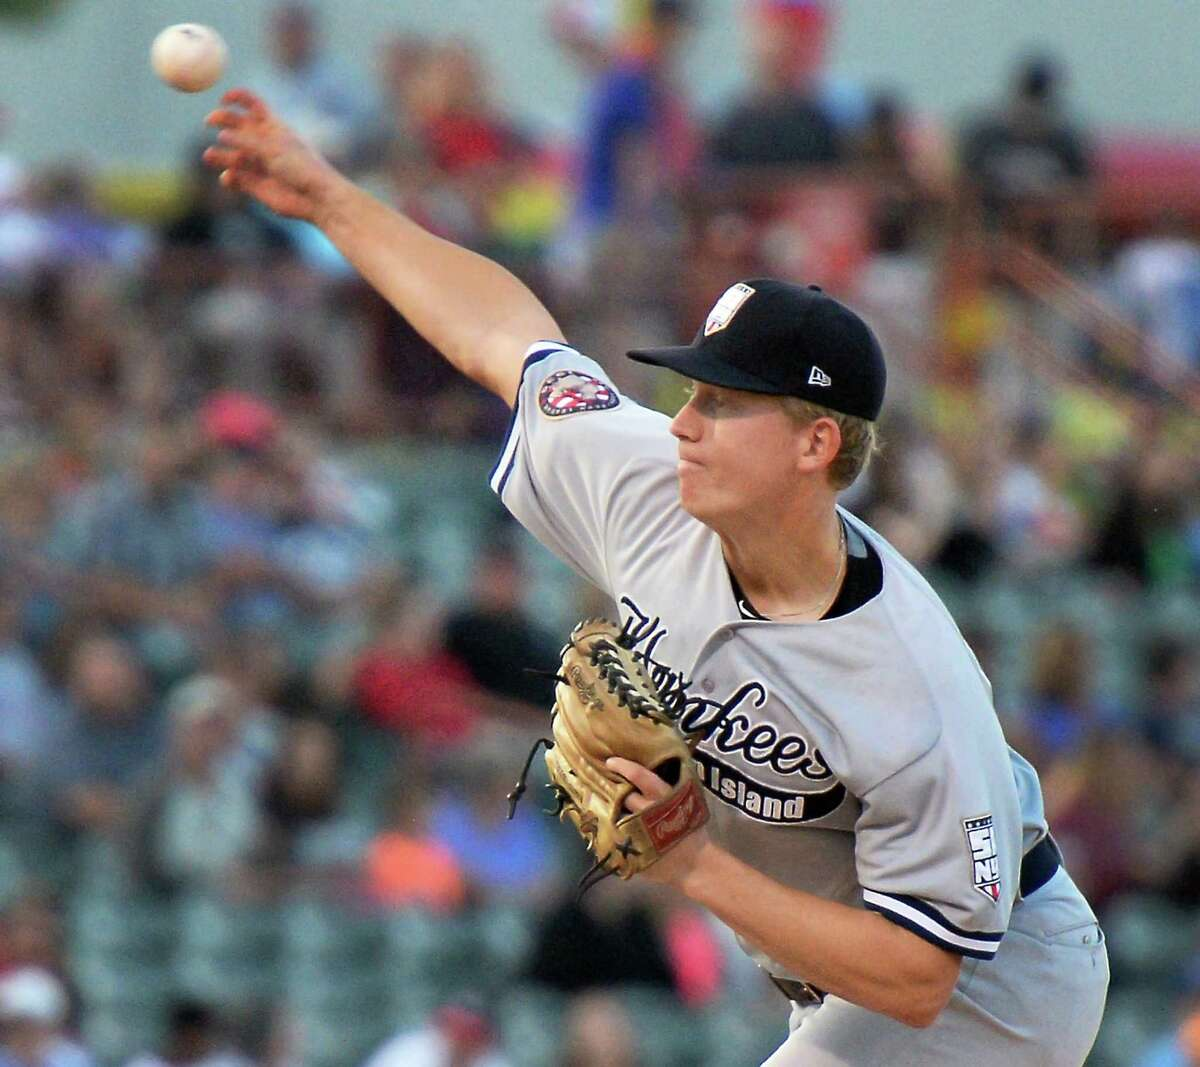 Staten Island Yankees pitcher Chad Martin in action against the Tri-City ValleyCats at Joe Bruno Stadium Saturday Sept. 3, 2016 in Troy, NY. (John Carl D'Annibale / Times Union)